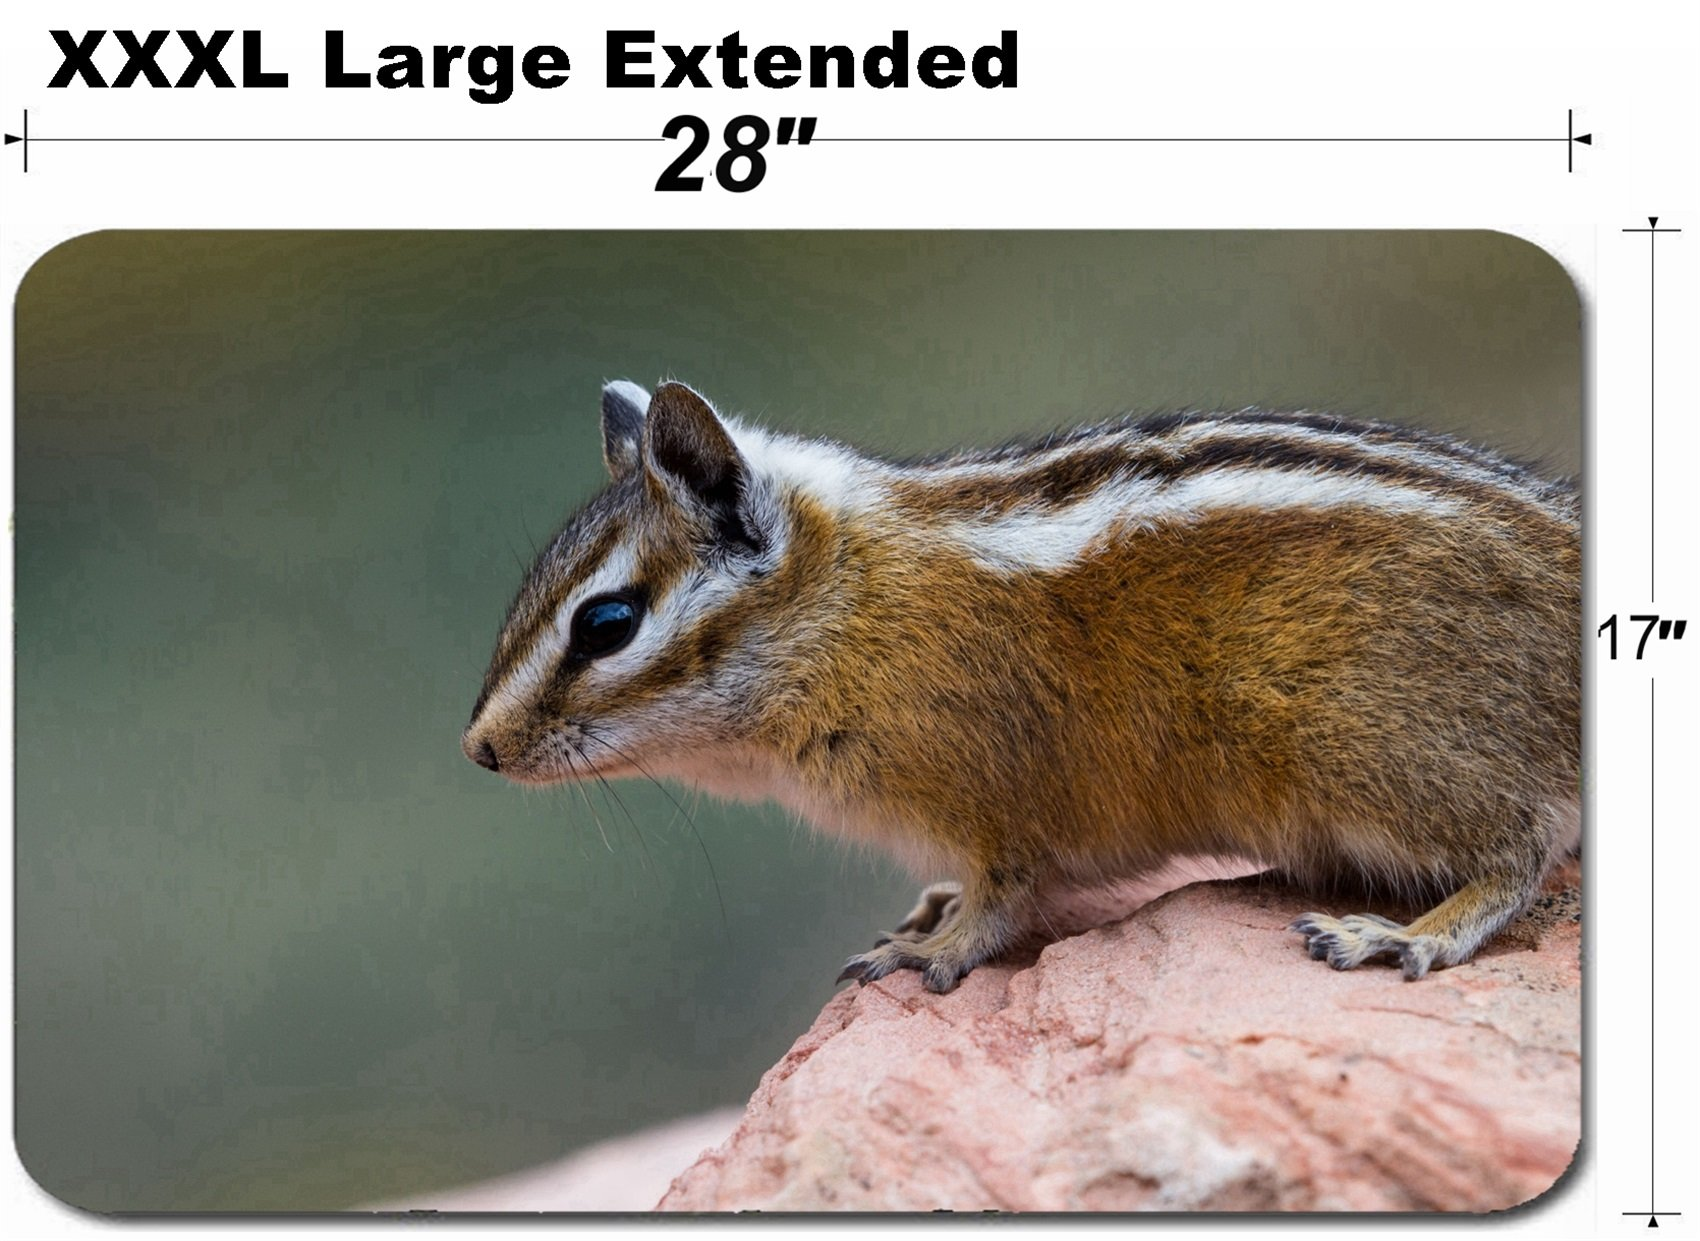 MSD Large Table Mat Non-Slip Natural Rubber Desk Pads Cute Small Chipmunk Standing on a Sandstone Rock in North America Image 34627874 Custom